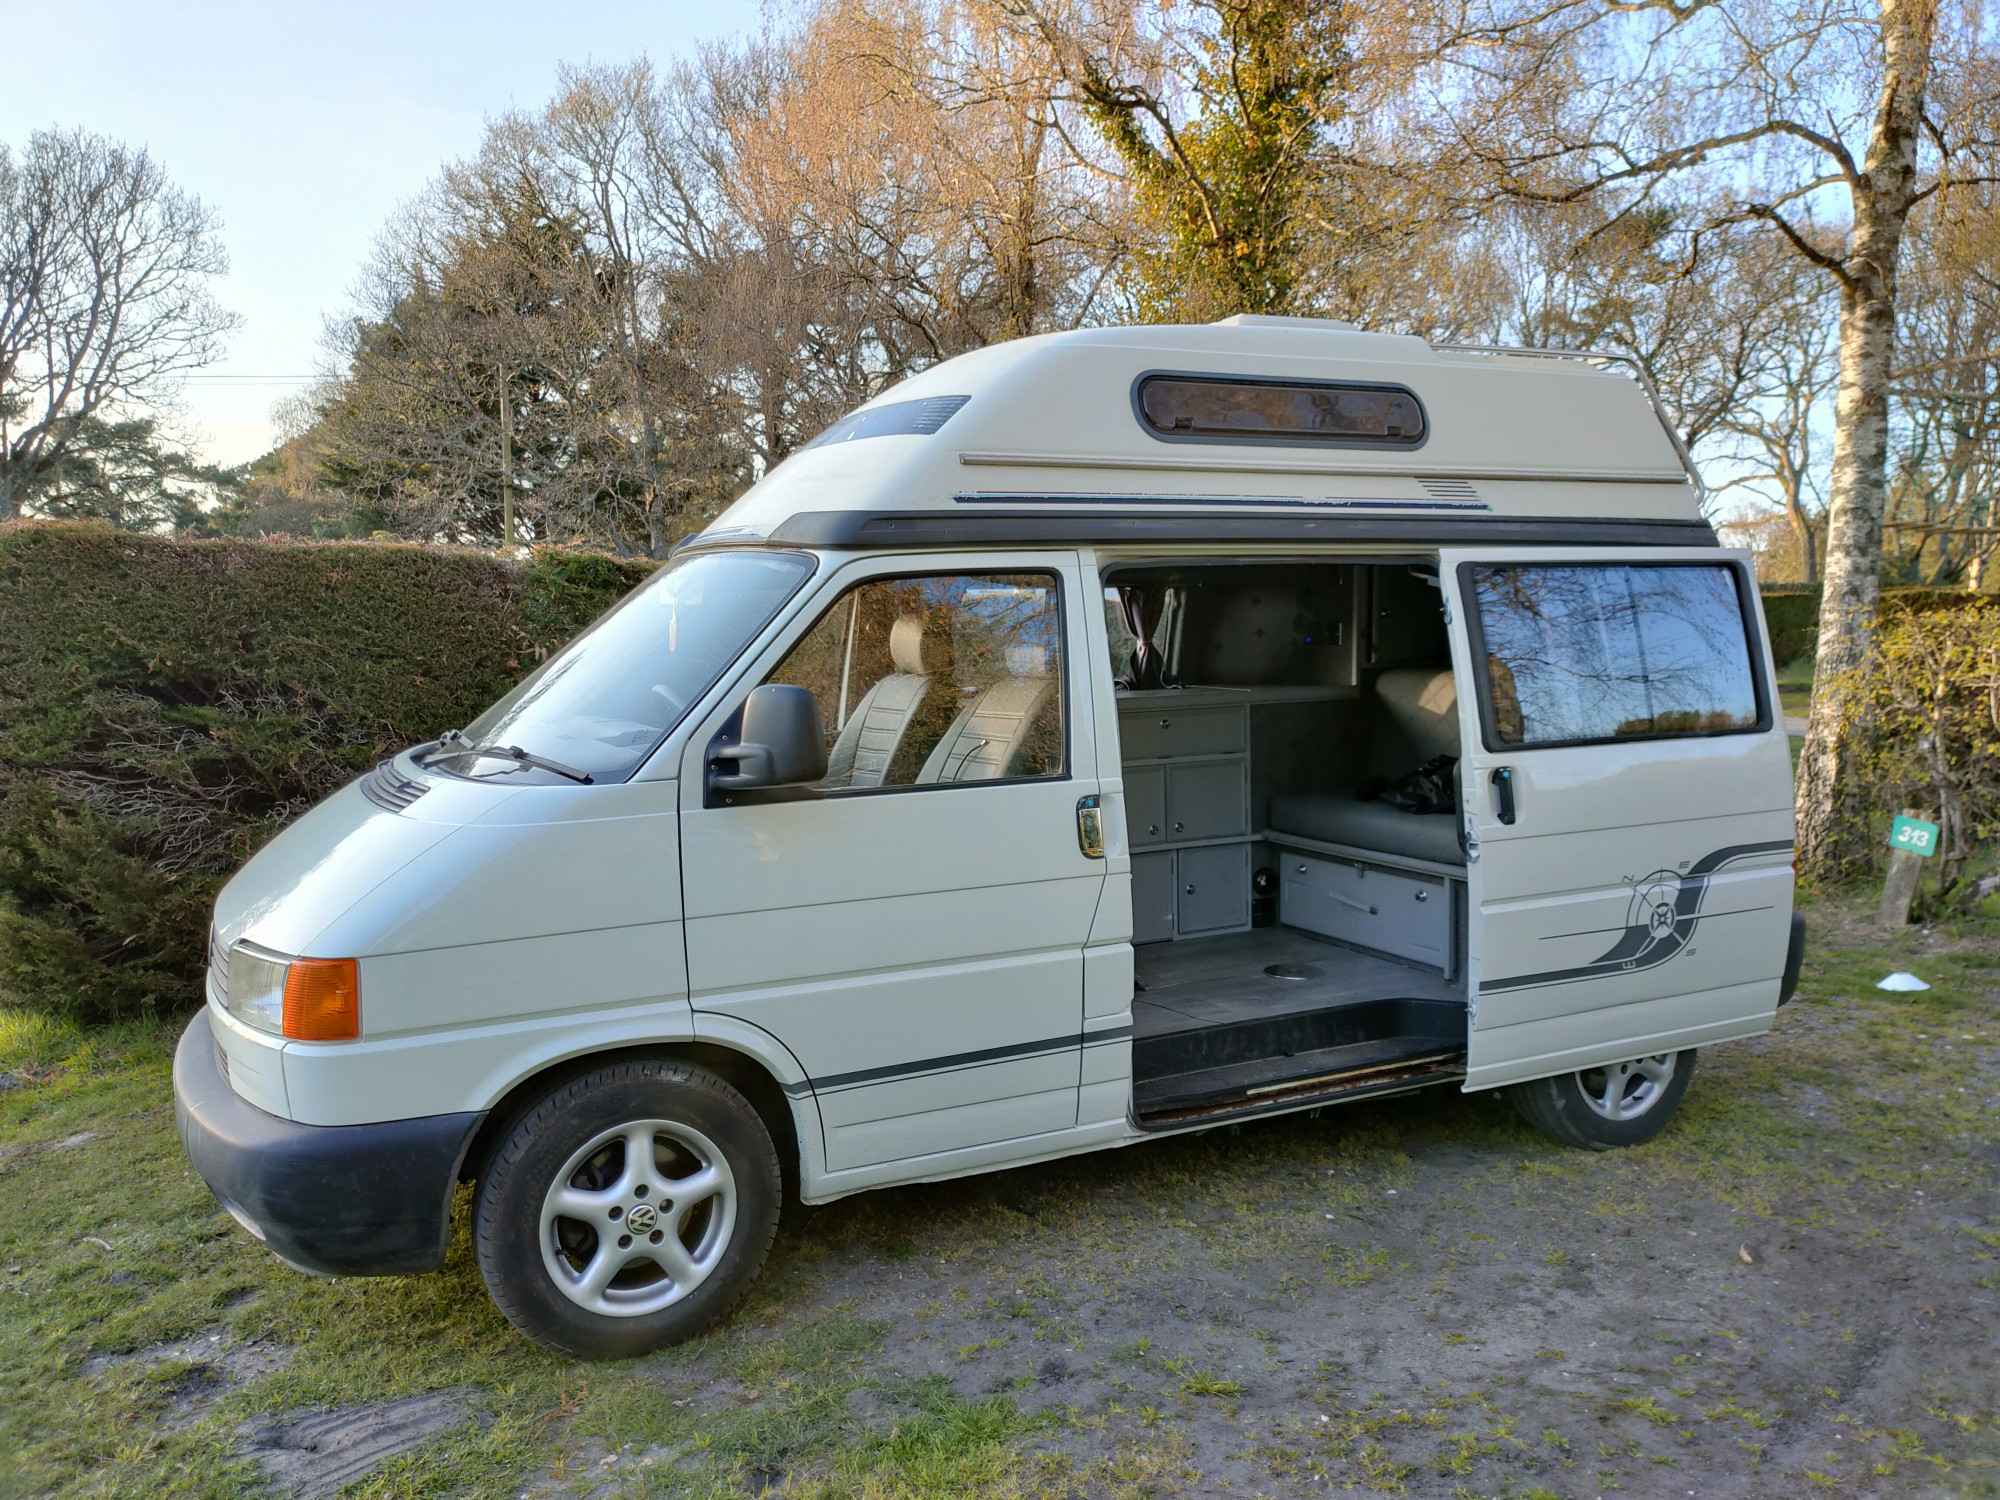 A VW T4 Campervan called Reginald and for hire in Ferndown, Dorset